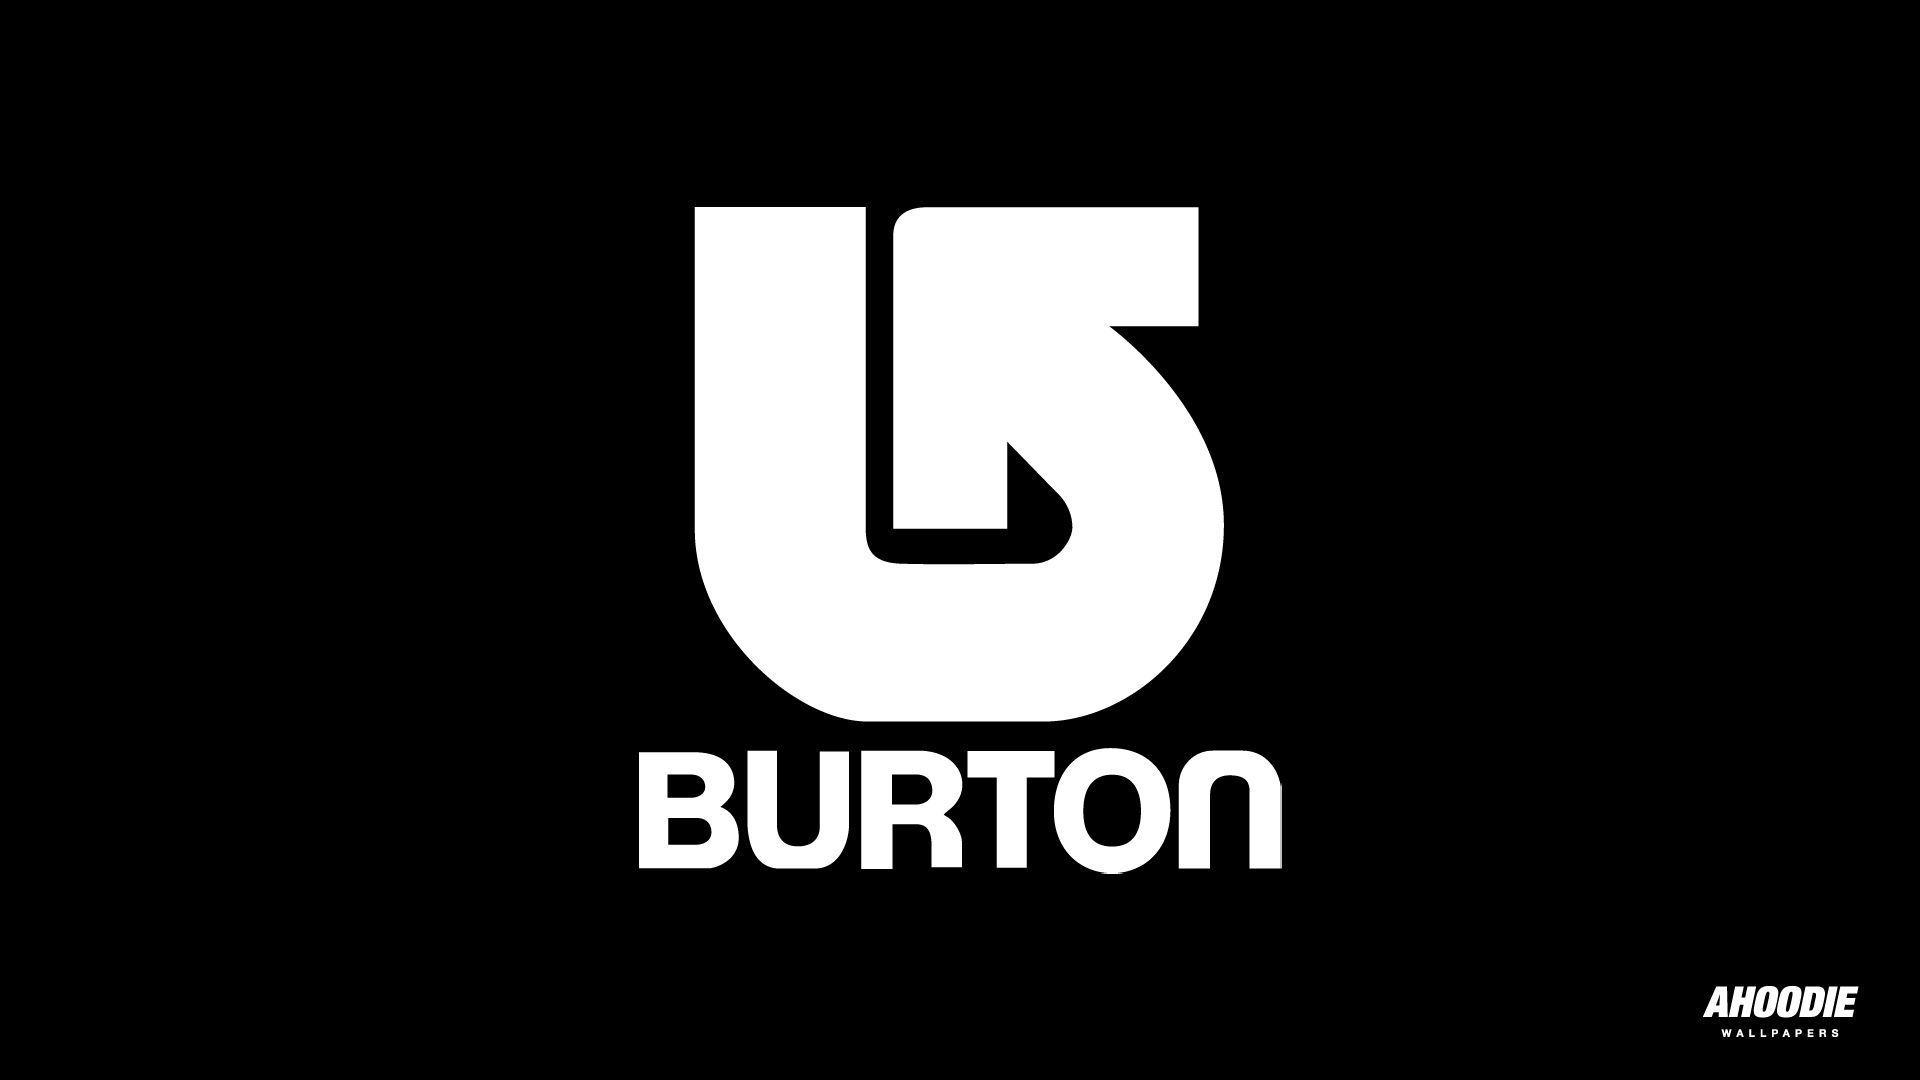 Burton Snowboard Wallpapers - Wallpaper Cave